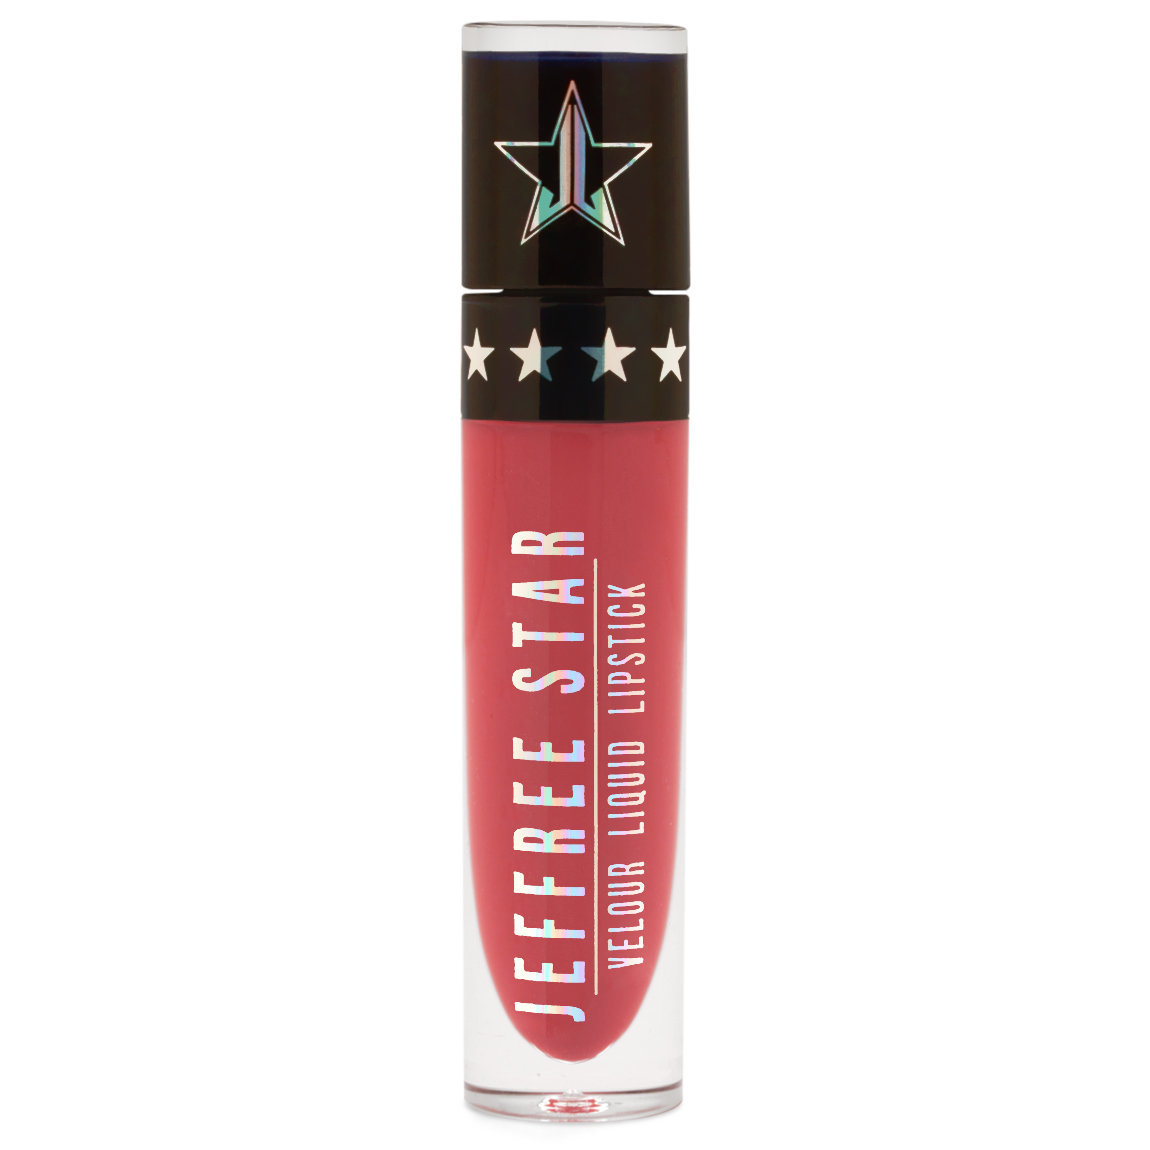 Jeffree Star Cosmetics Velour Liquid Lipstick I'm Shook